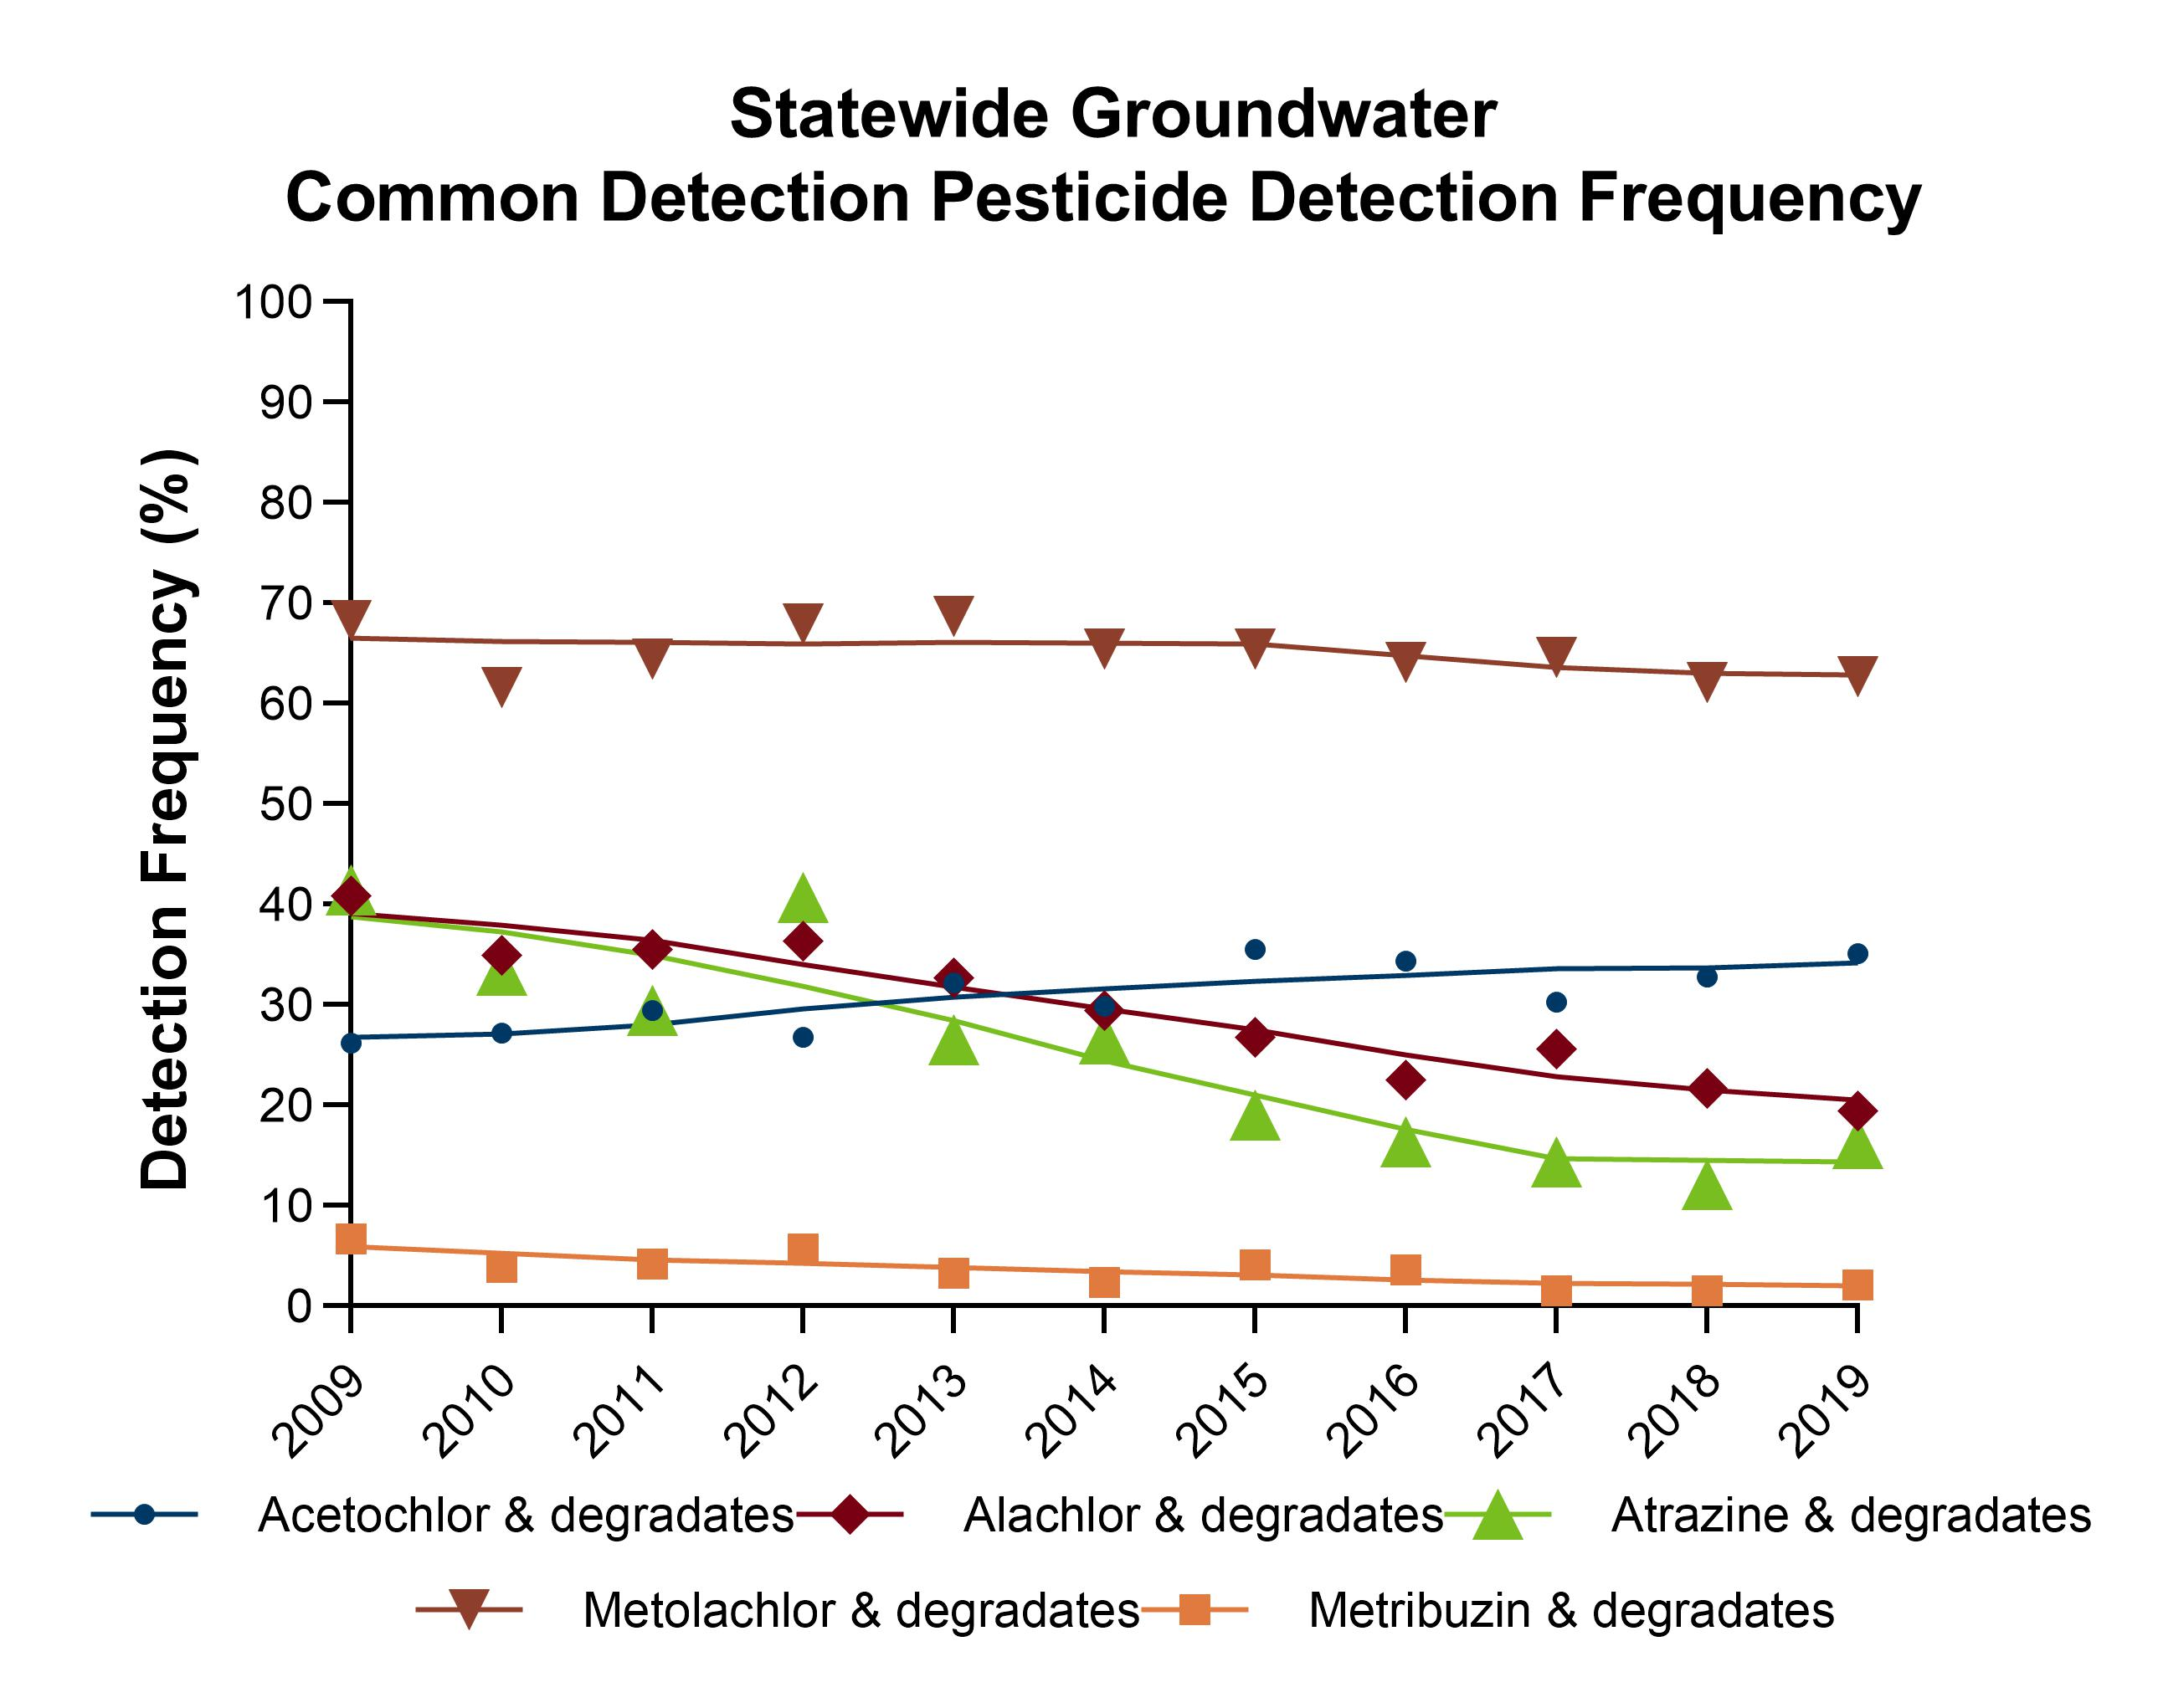 Pesticide detection frequency for statewide groundwater monitoring 2010-2019. The following pesticides are graphed and values include the pesticide plus their degradates: Acetochlor, Alachlor, Atrazine, Metolachlor, and Metribuzin. Detection frequencies range from about 67% to less than 10%. Over time, the line for Metolchlor is relatively flat, values are between 60-70%. Alachlor and Atrazine both have a decreasing slope, values fall within 40-15%. Metribuzin has slight decline all values under 10%. Acetochlor show a slight increase over time, values fall between 25-40%.